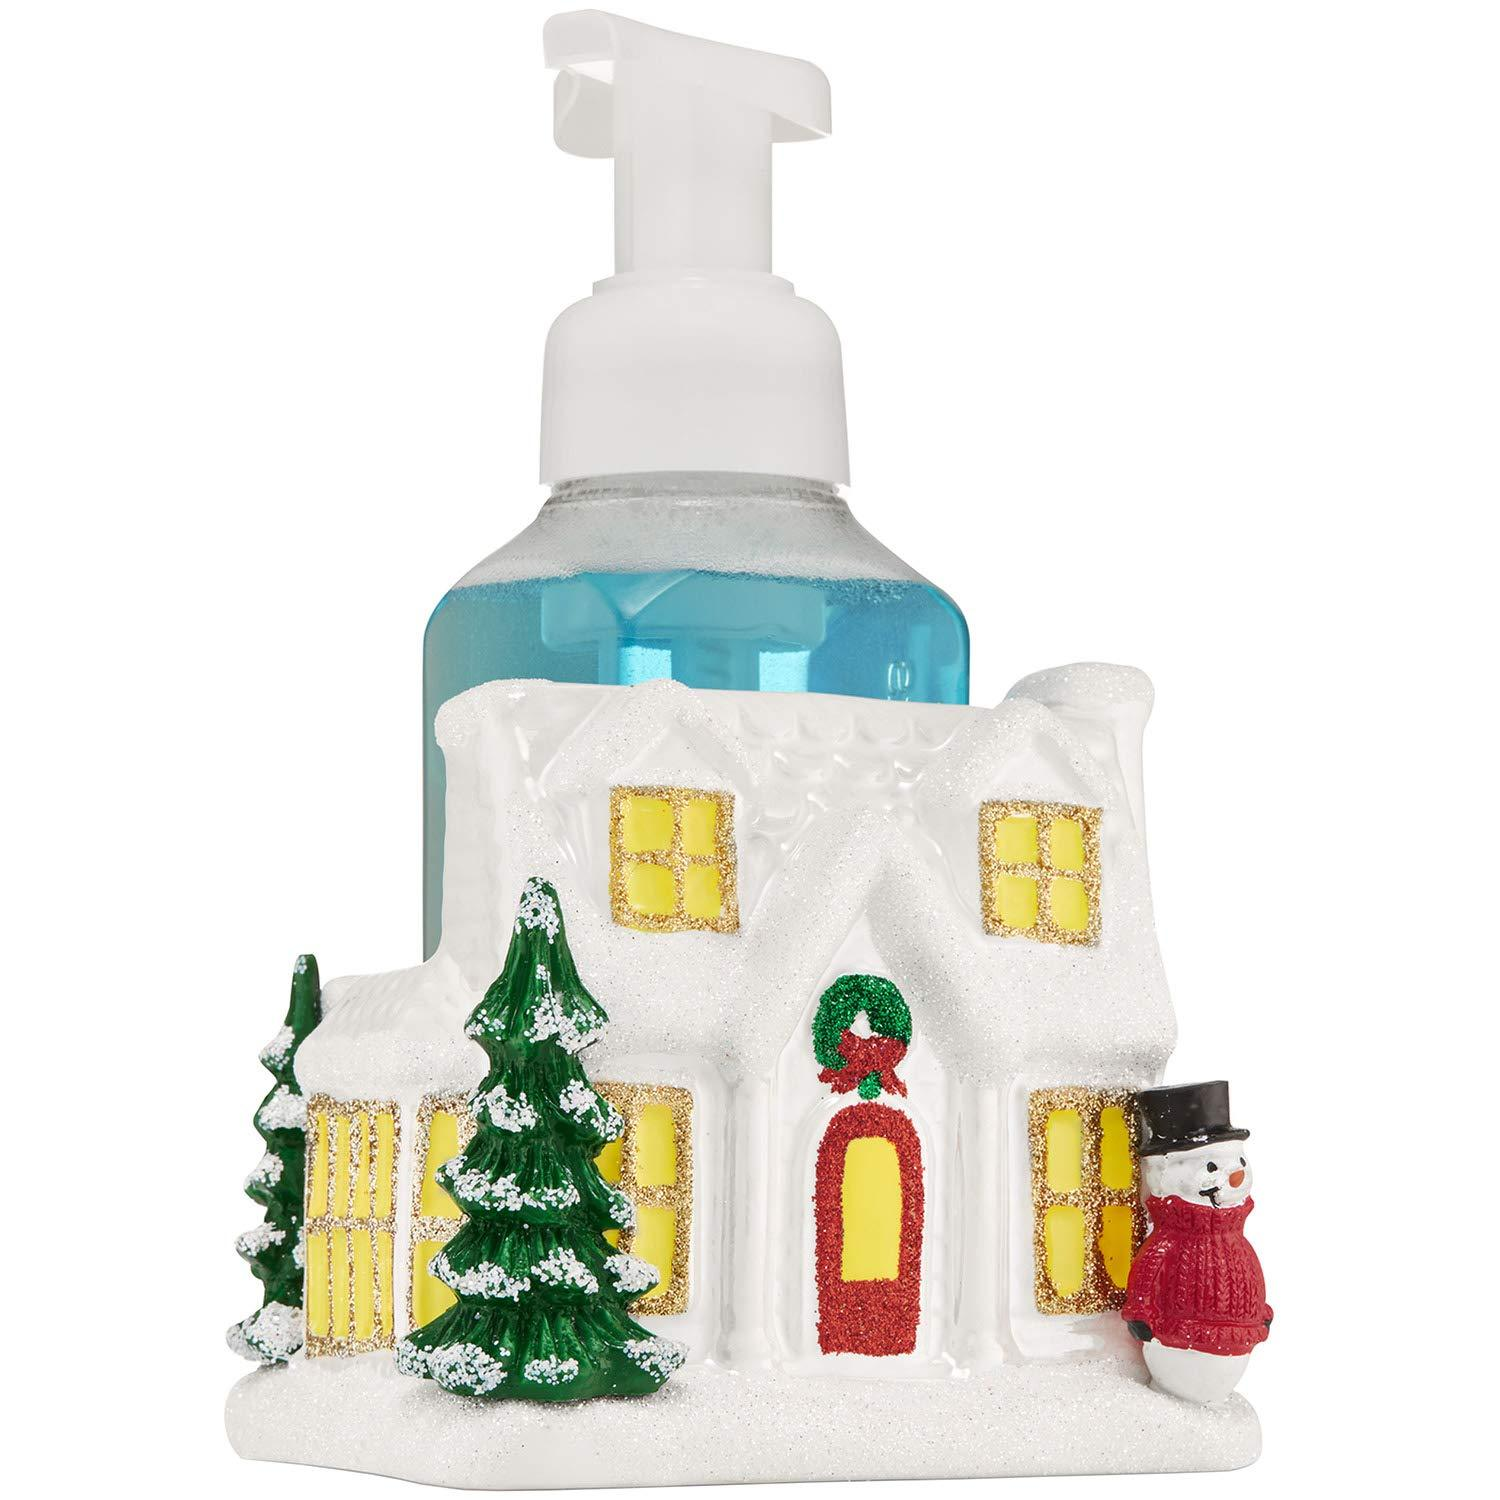 Bath & Body Works Ceramic Holiday House Hand Soap Holder